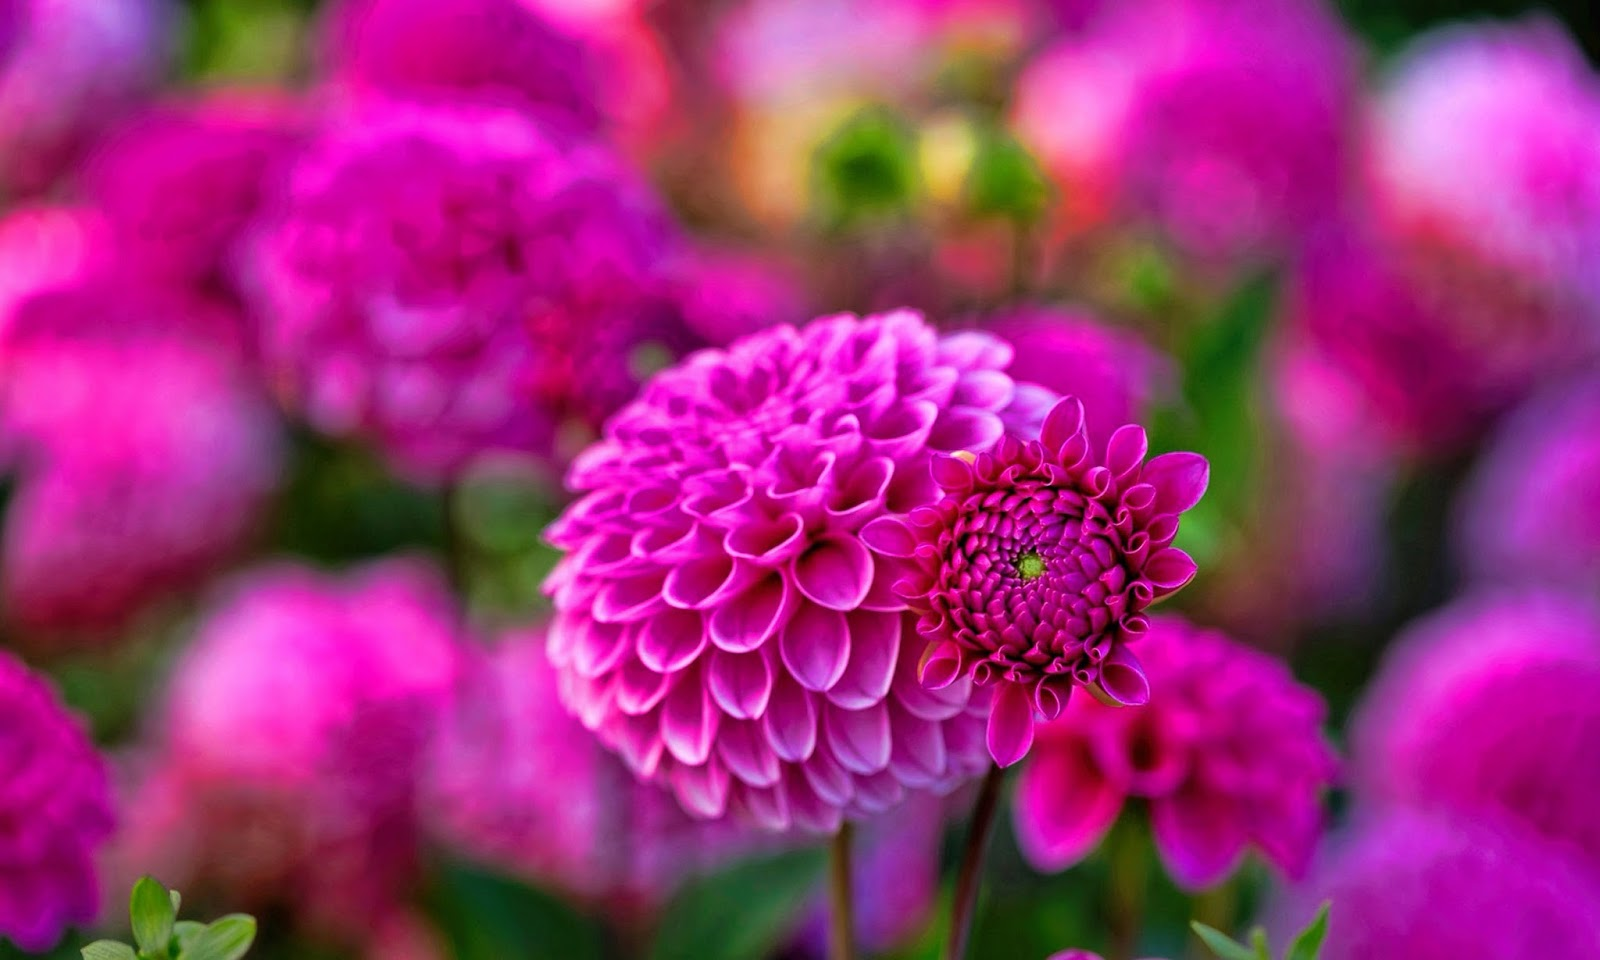 Dahlia Flower HD Wallpapers